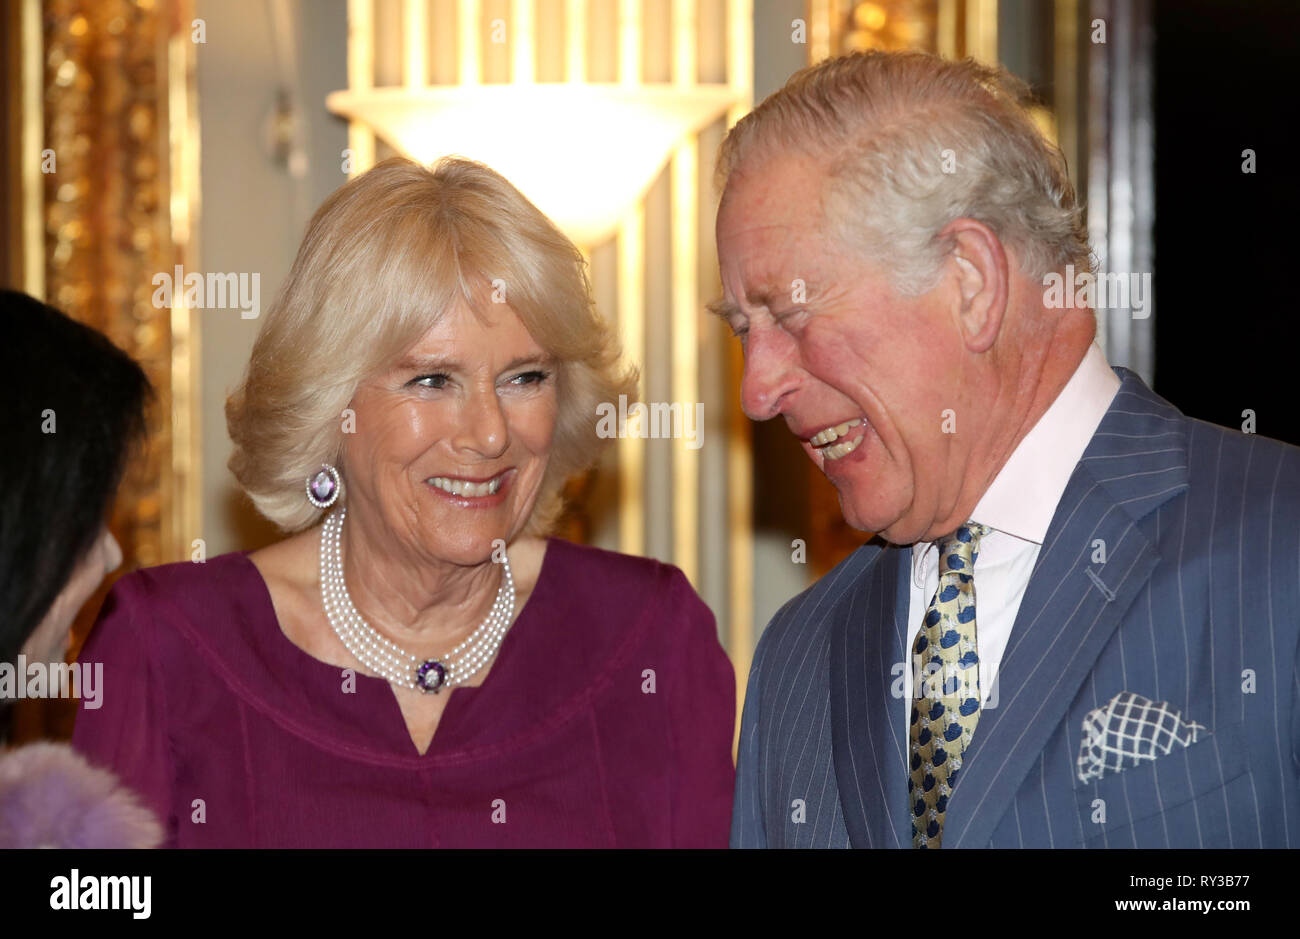 The Prince of Wales and the Duchess of Cornwall at the annual Commonwealth Day reception at Marlborough House, the home of the Commonwealth Secretariat in London. Stock Photo